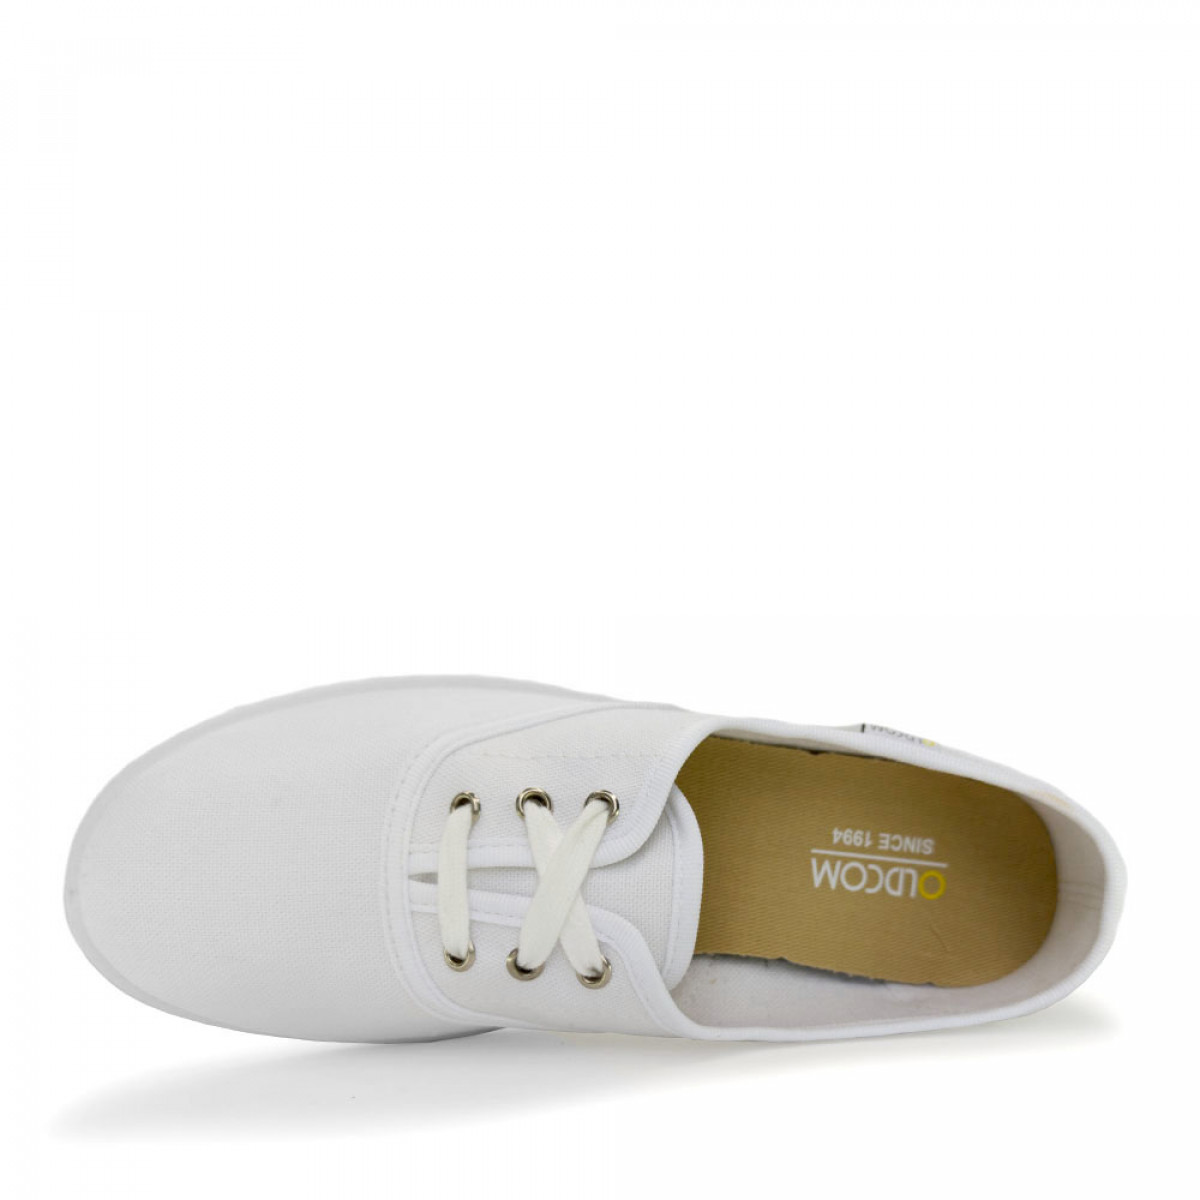 Sneakers OXFORD Canvas, White